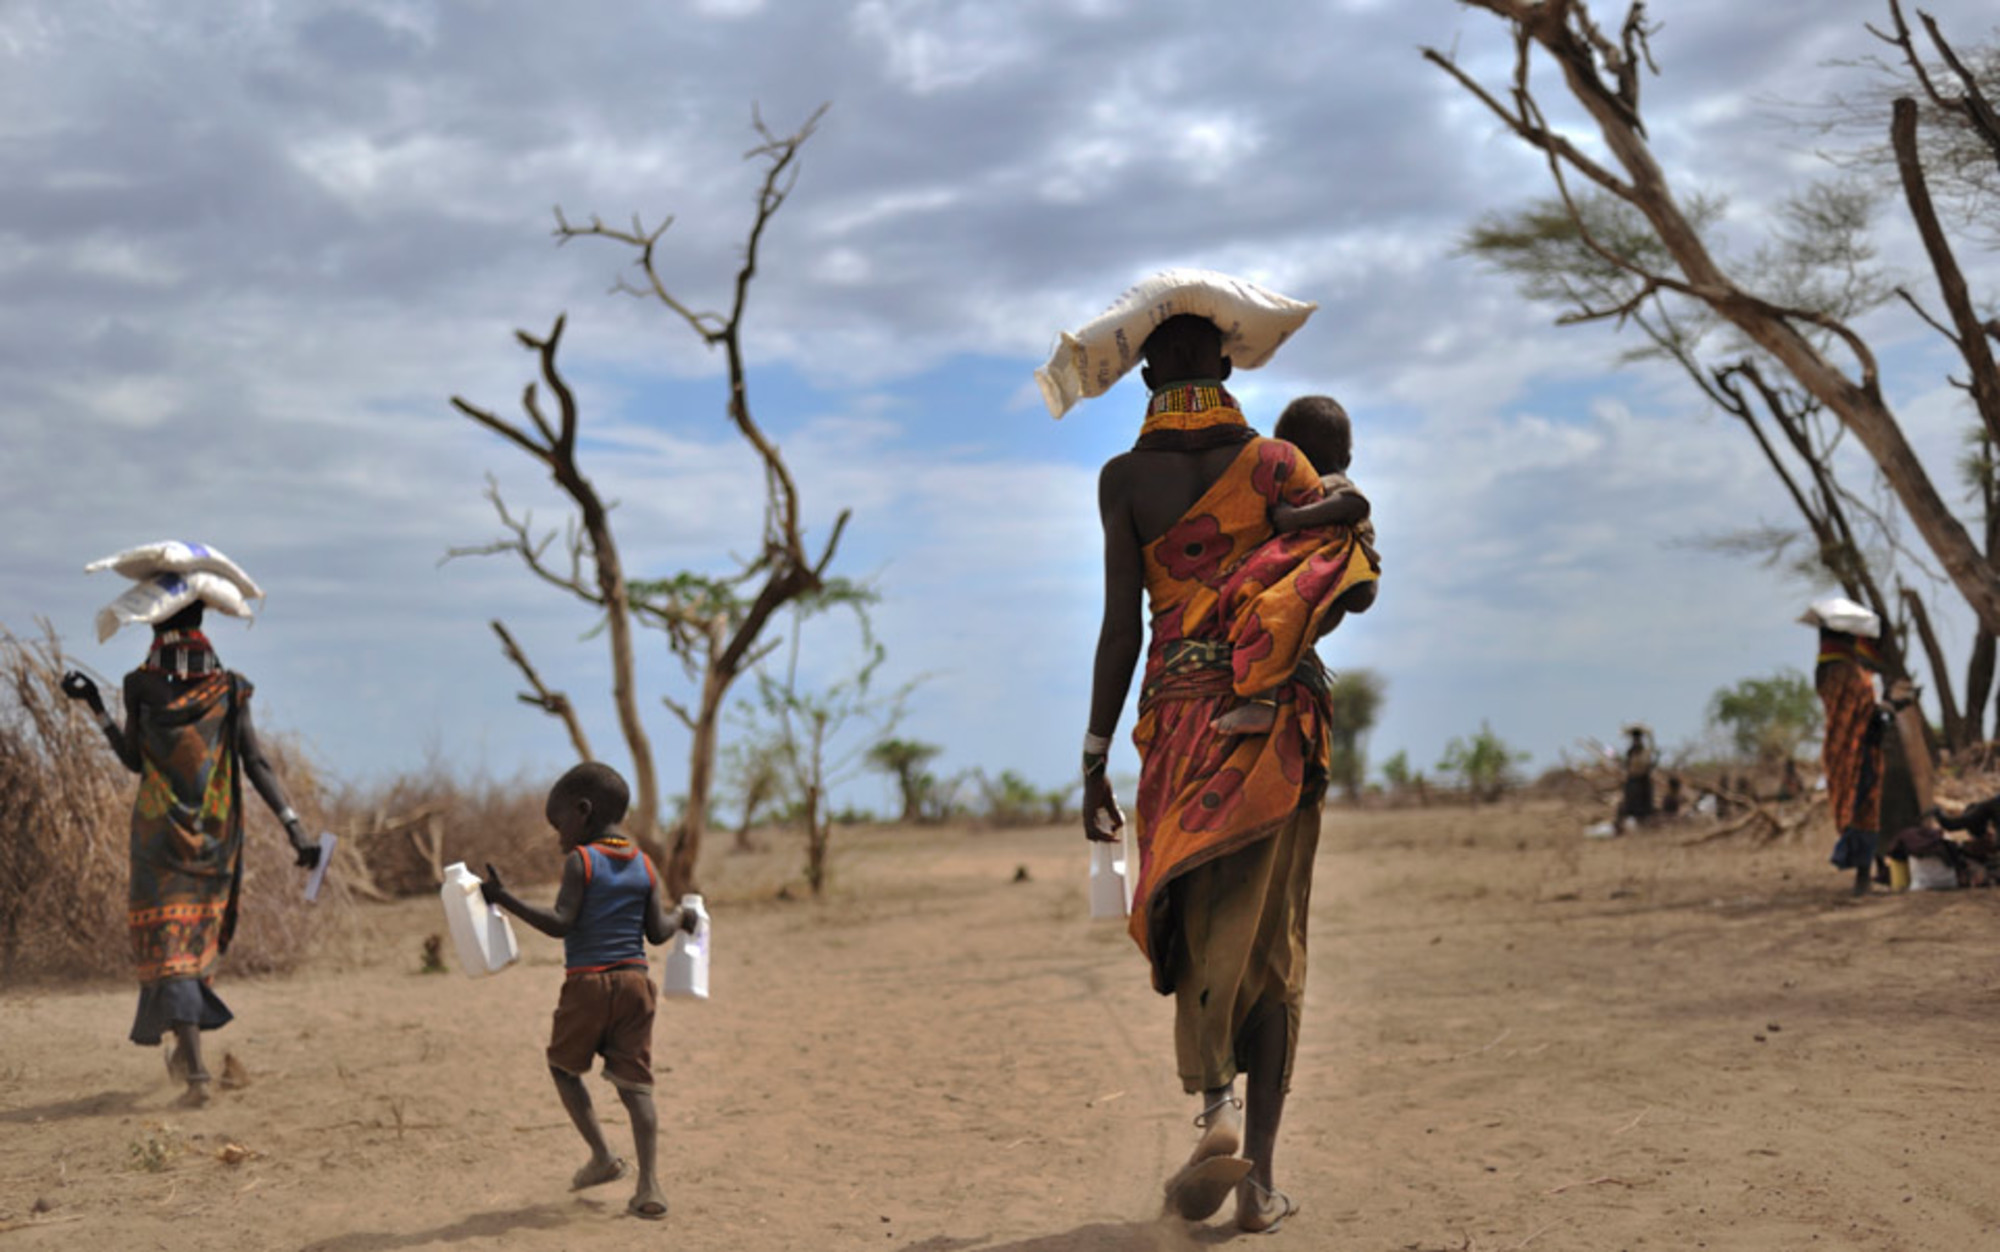 will oil turn arid turkana into the new delta essays